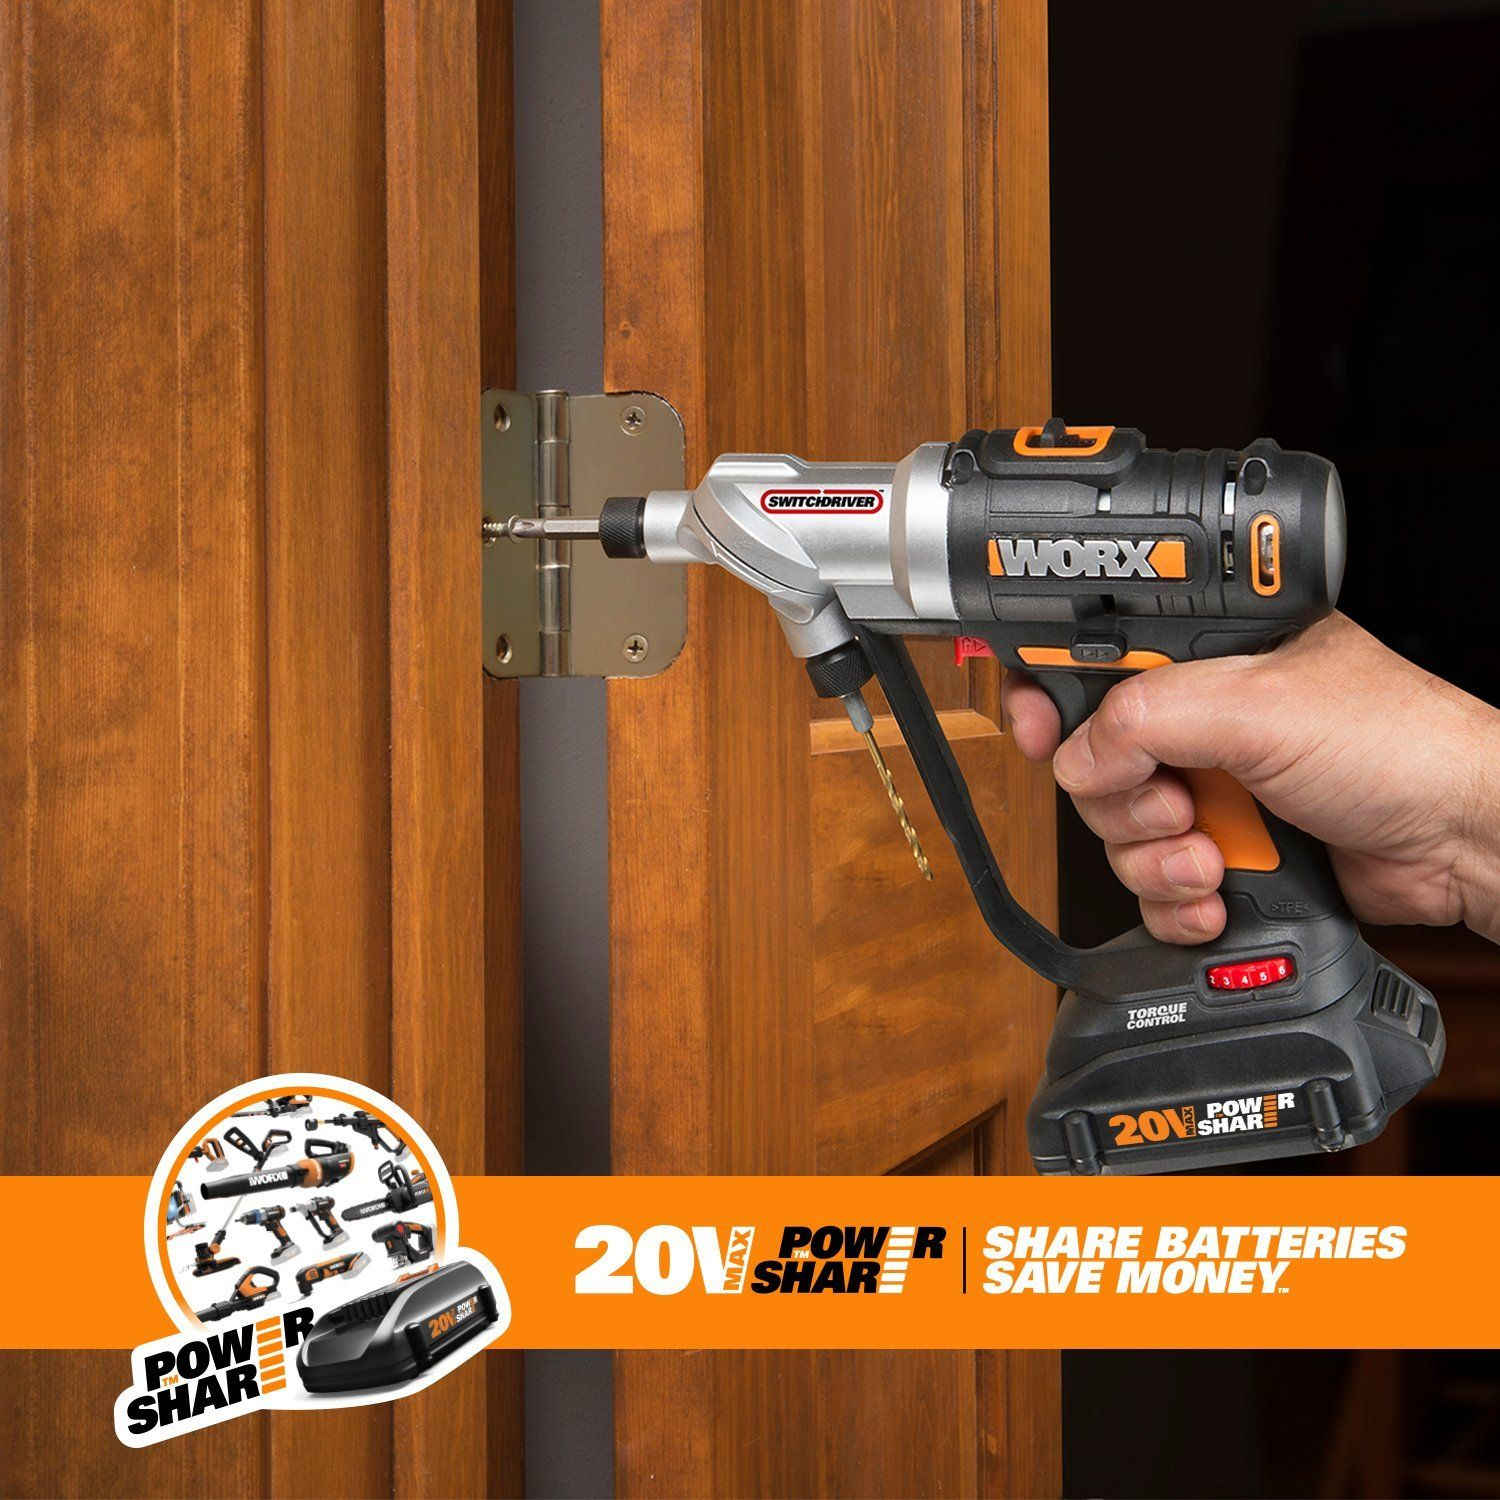 Worx 20v Switchdriver 2 In 1 Cordless Drill And Driver Tool Check It Out Now Cordless Drill Drill Cordless